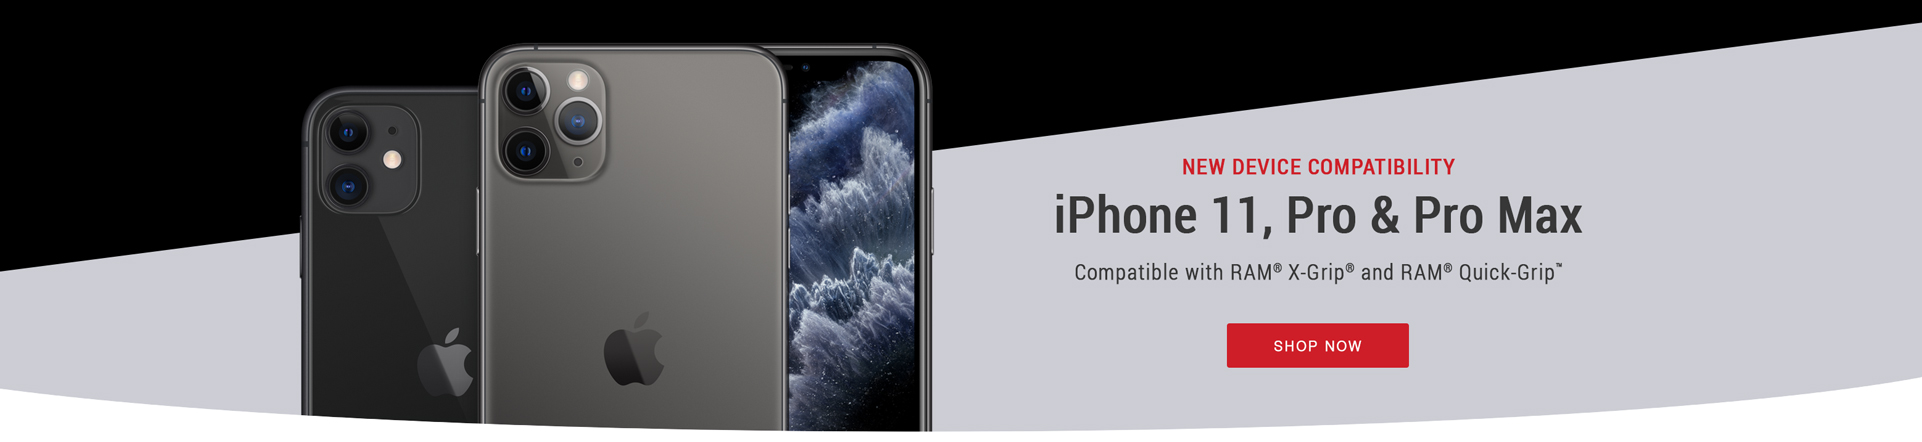 iPhone 11, Pro & Pro Max Now Compatible with RAM® X-Grip® & RAM® Quick-Grip™